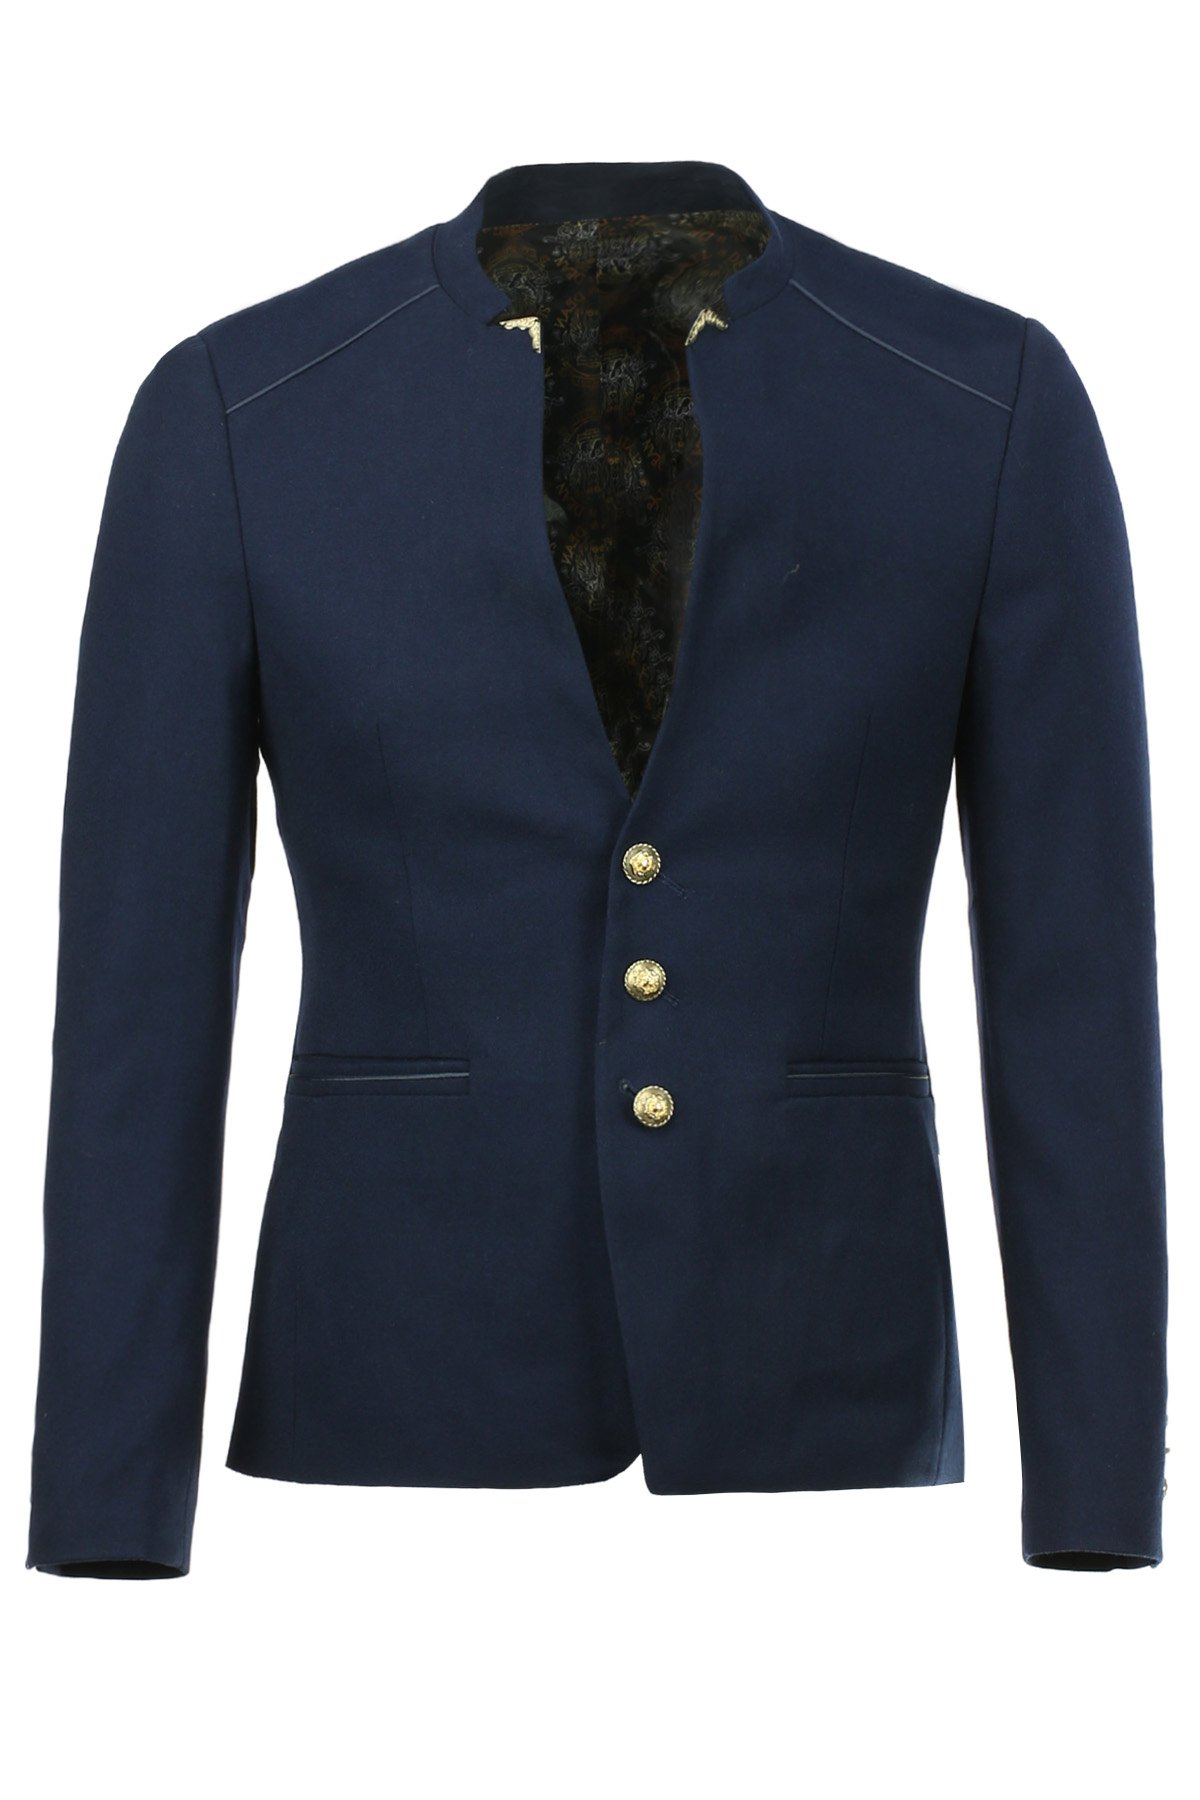 Trendy Stand Collar Button Design Cuffs Long Sleeve Men's Single-Breasted Blazer - DEEP BLUE S